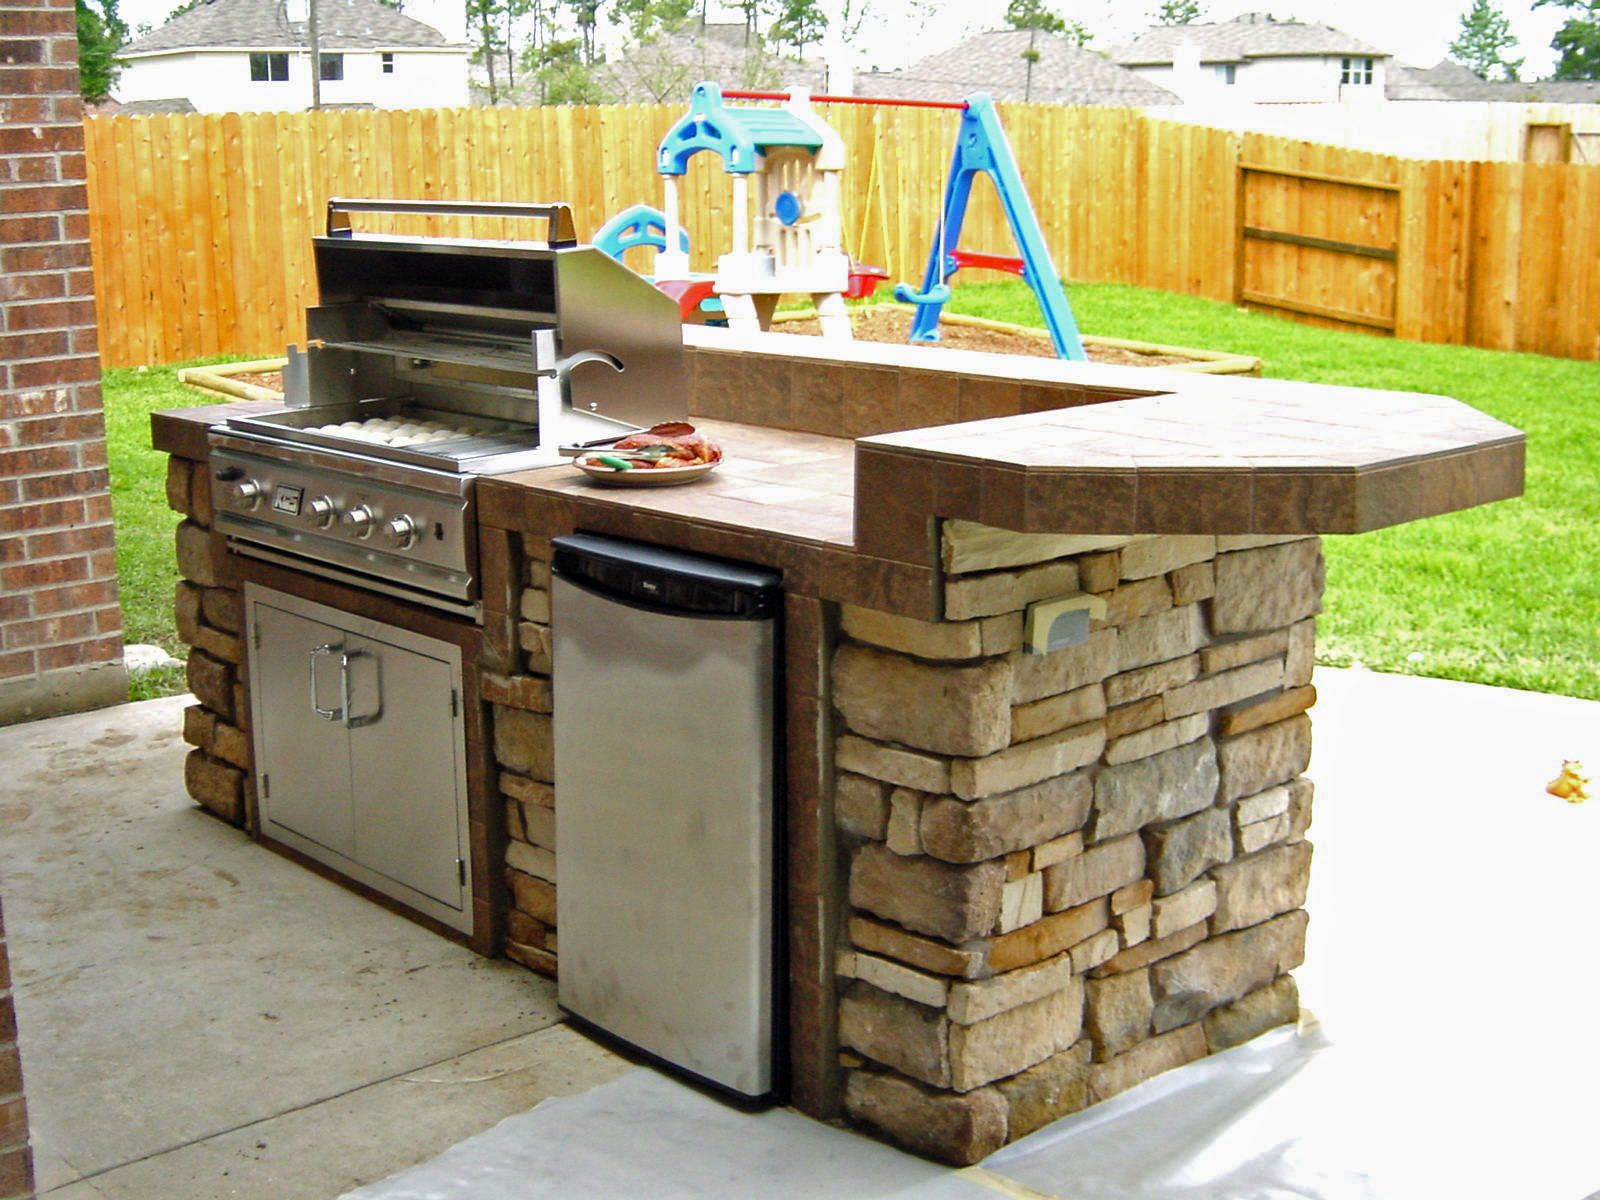 15 functional and durable outdoor kitchen ideas for your backyard with images small outdoor on outdoor kitchen yard id=92963